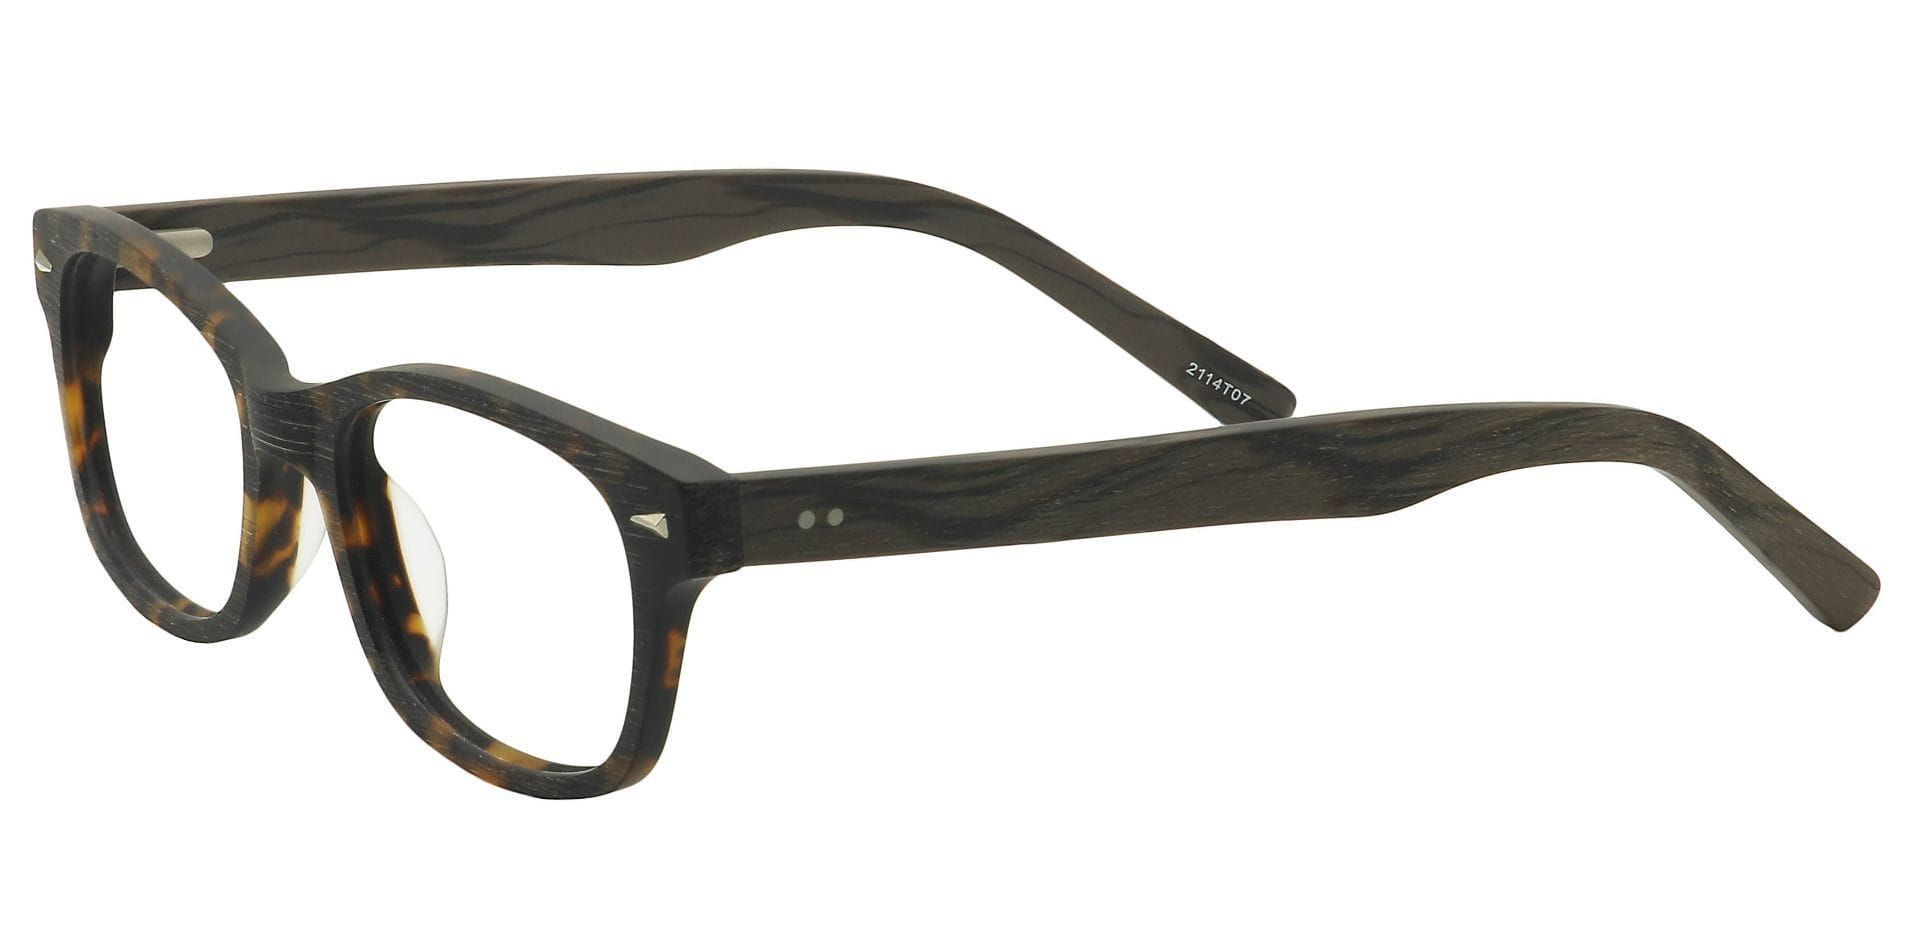 Timbre Rectangle Eyeglasses Frame - Tortoise